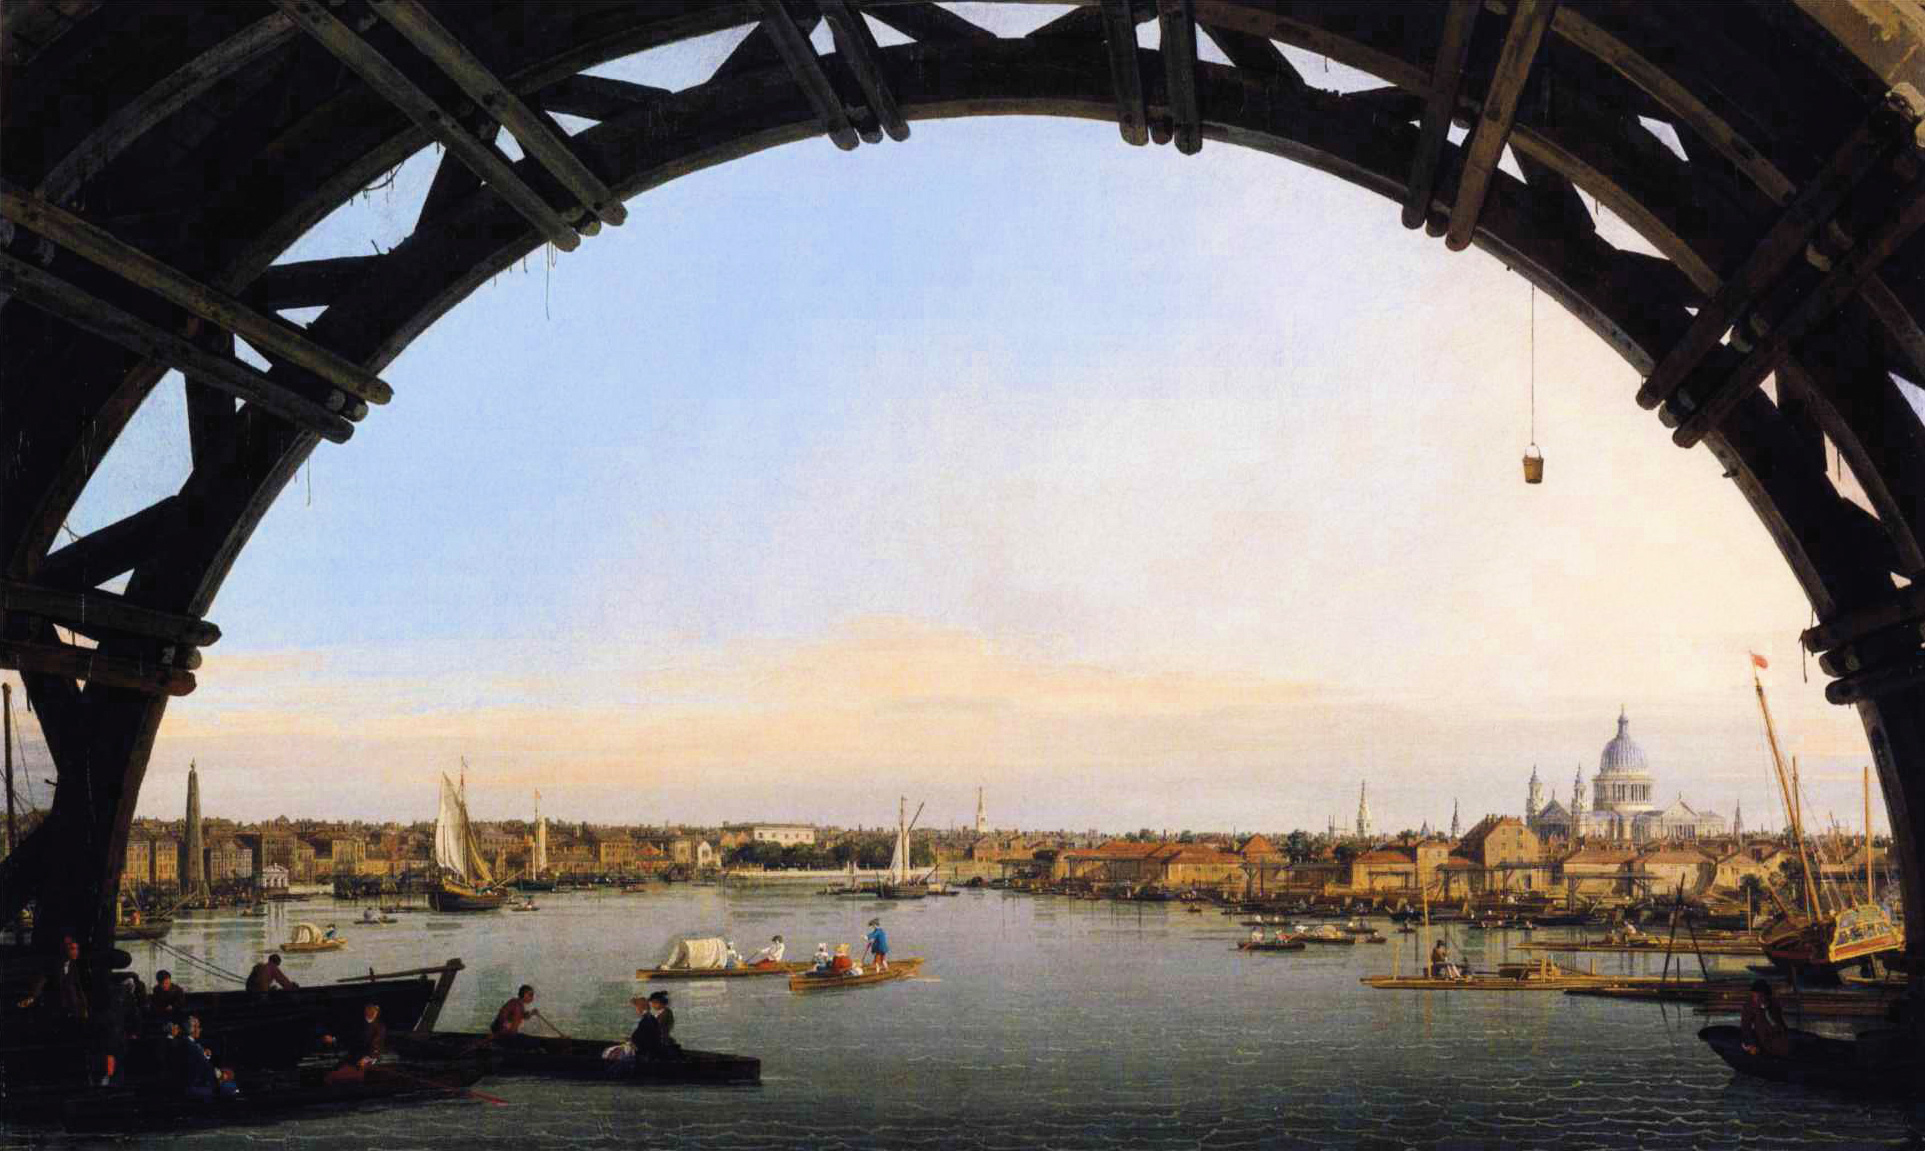 http://upload.wikimedia.org/wikipedia/commons/2/26/Canaletto_-_The_City_Seen_Through_an_Arch_of_Westminster_Bridge.JPG